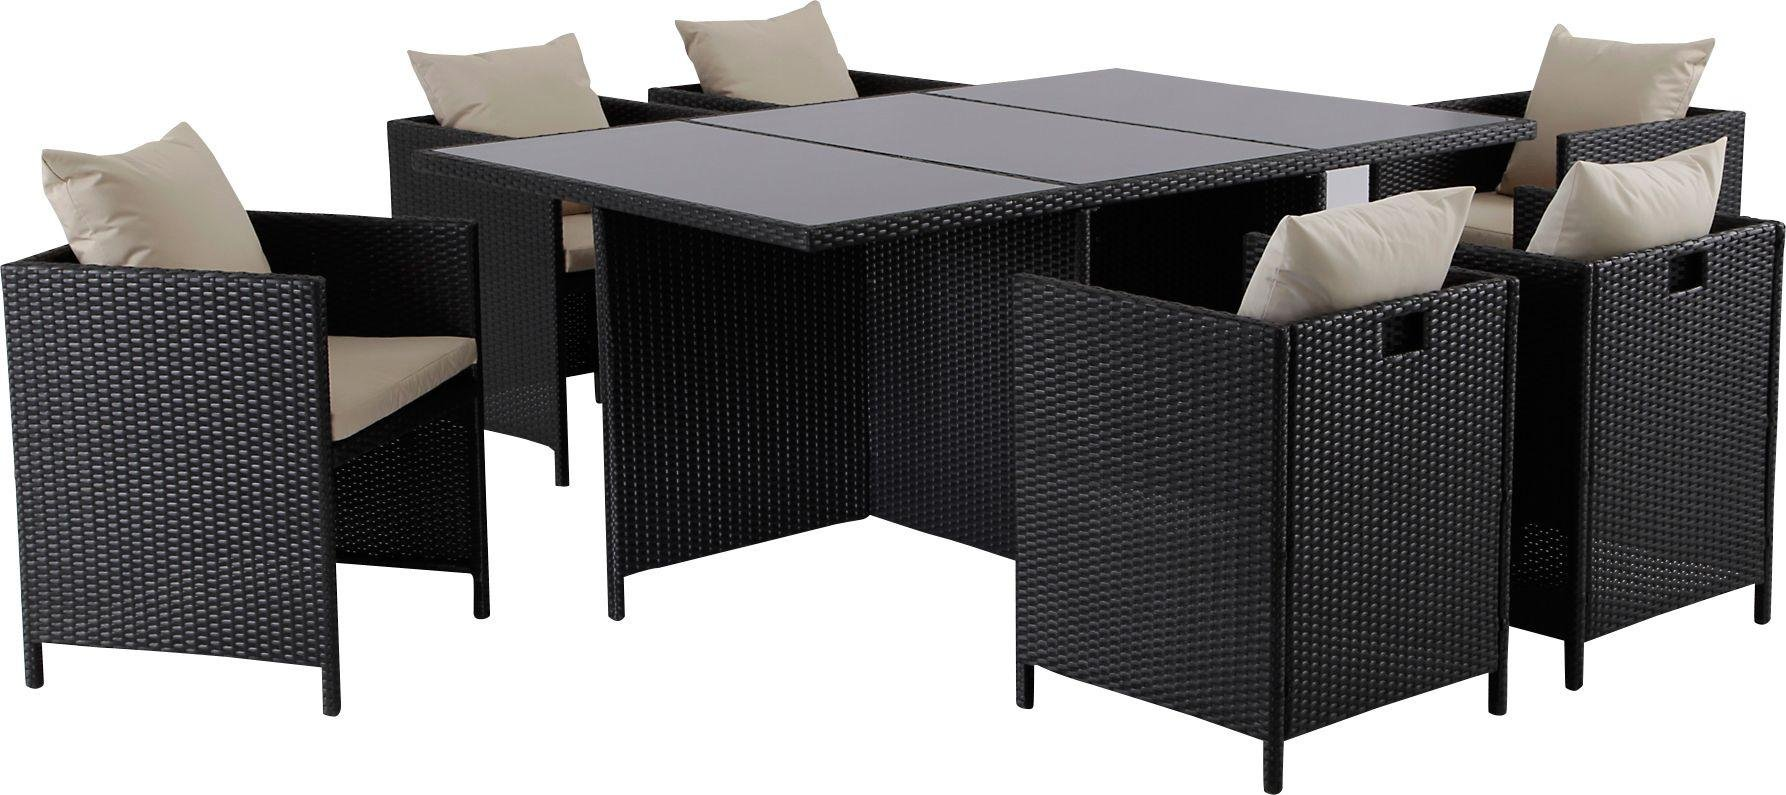 Garden Furniture 6 Seater buy hand-woven rattan effect cube 6 seater patio set - black at